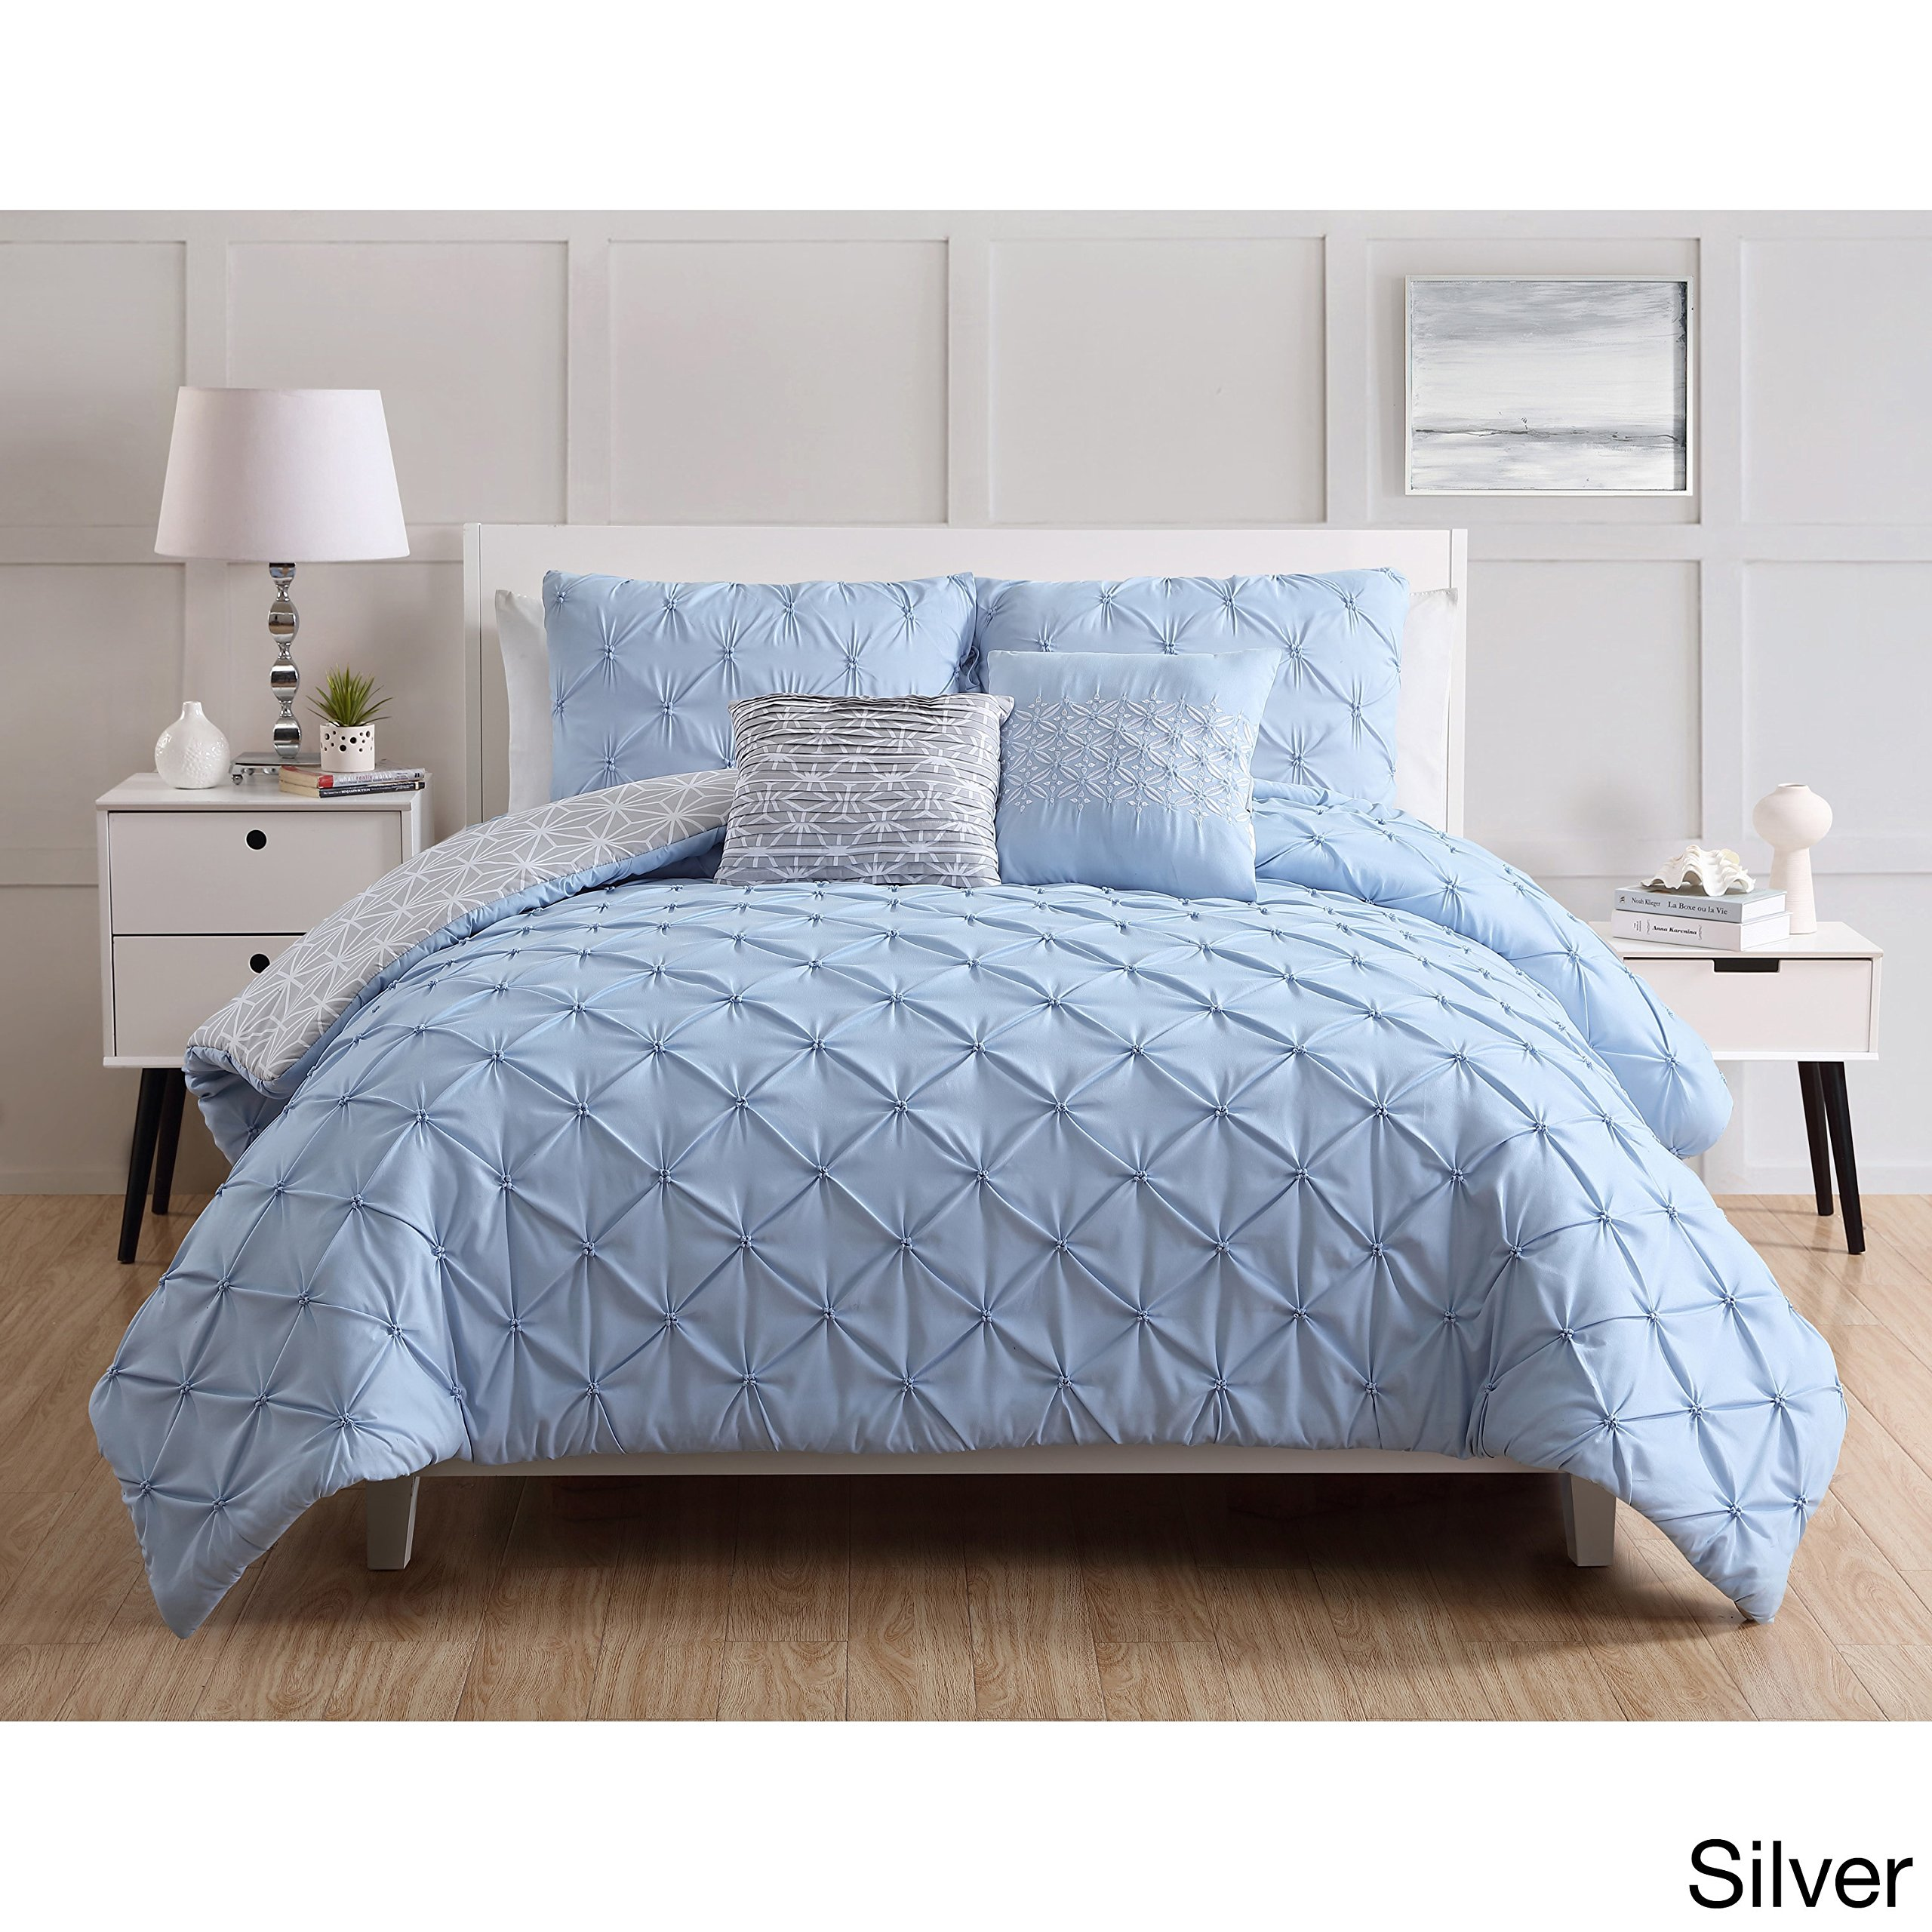 Lattice Embossed 7 Piece Bed In A Bag Comforter  - Queen by VCNY Home